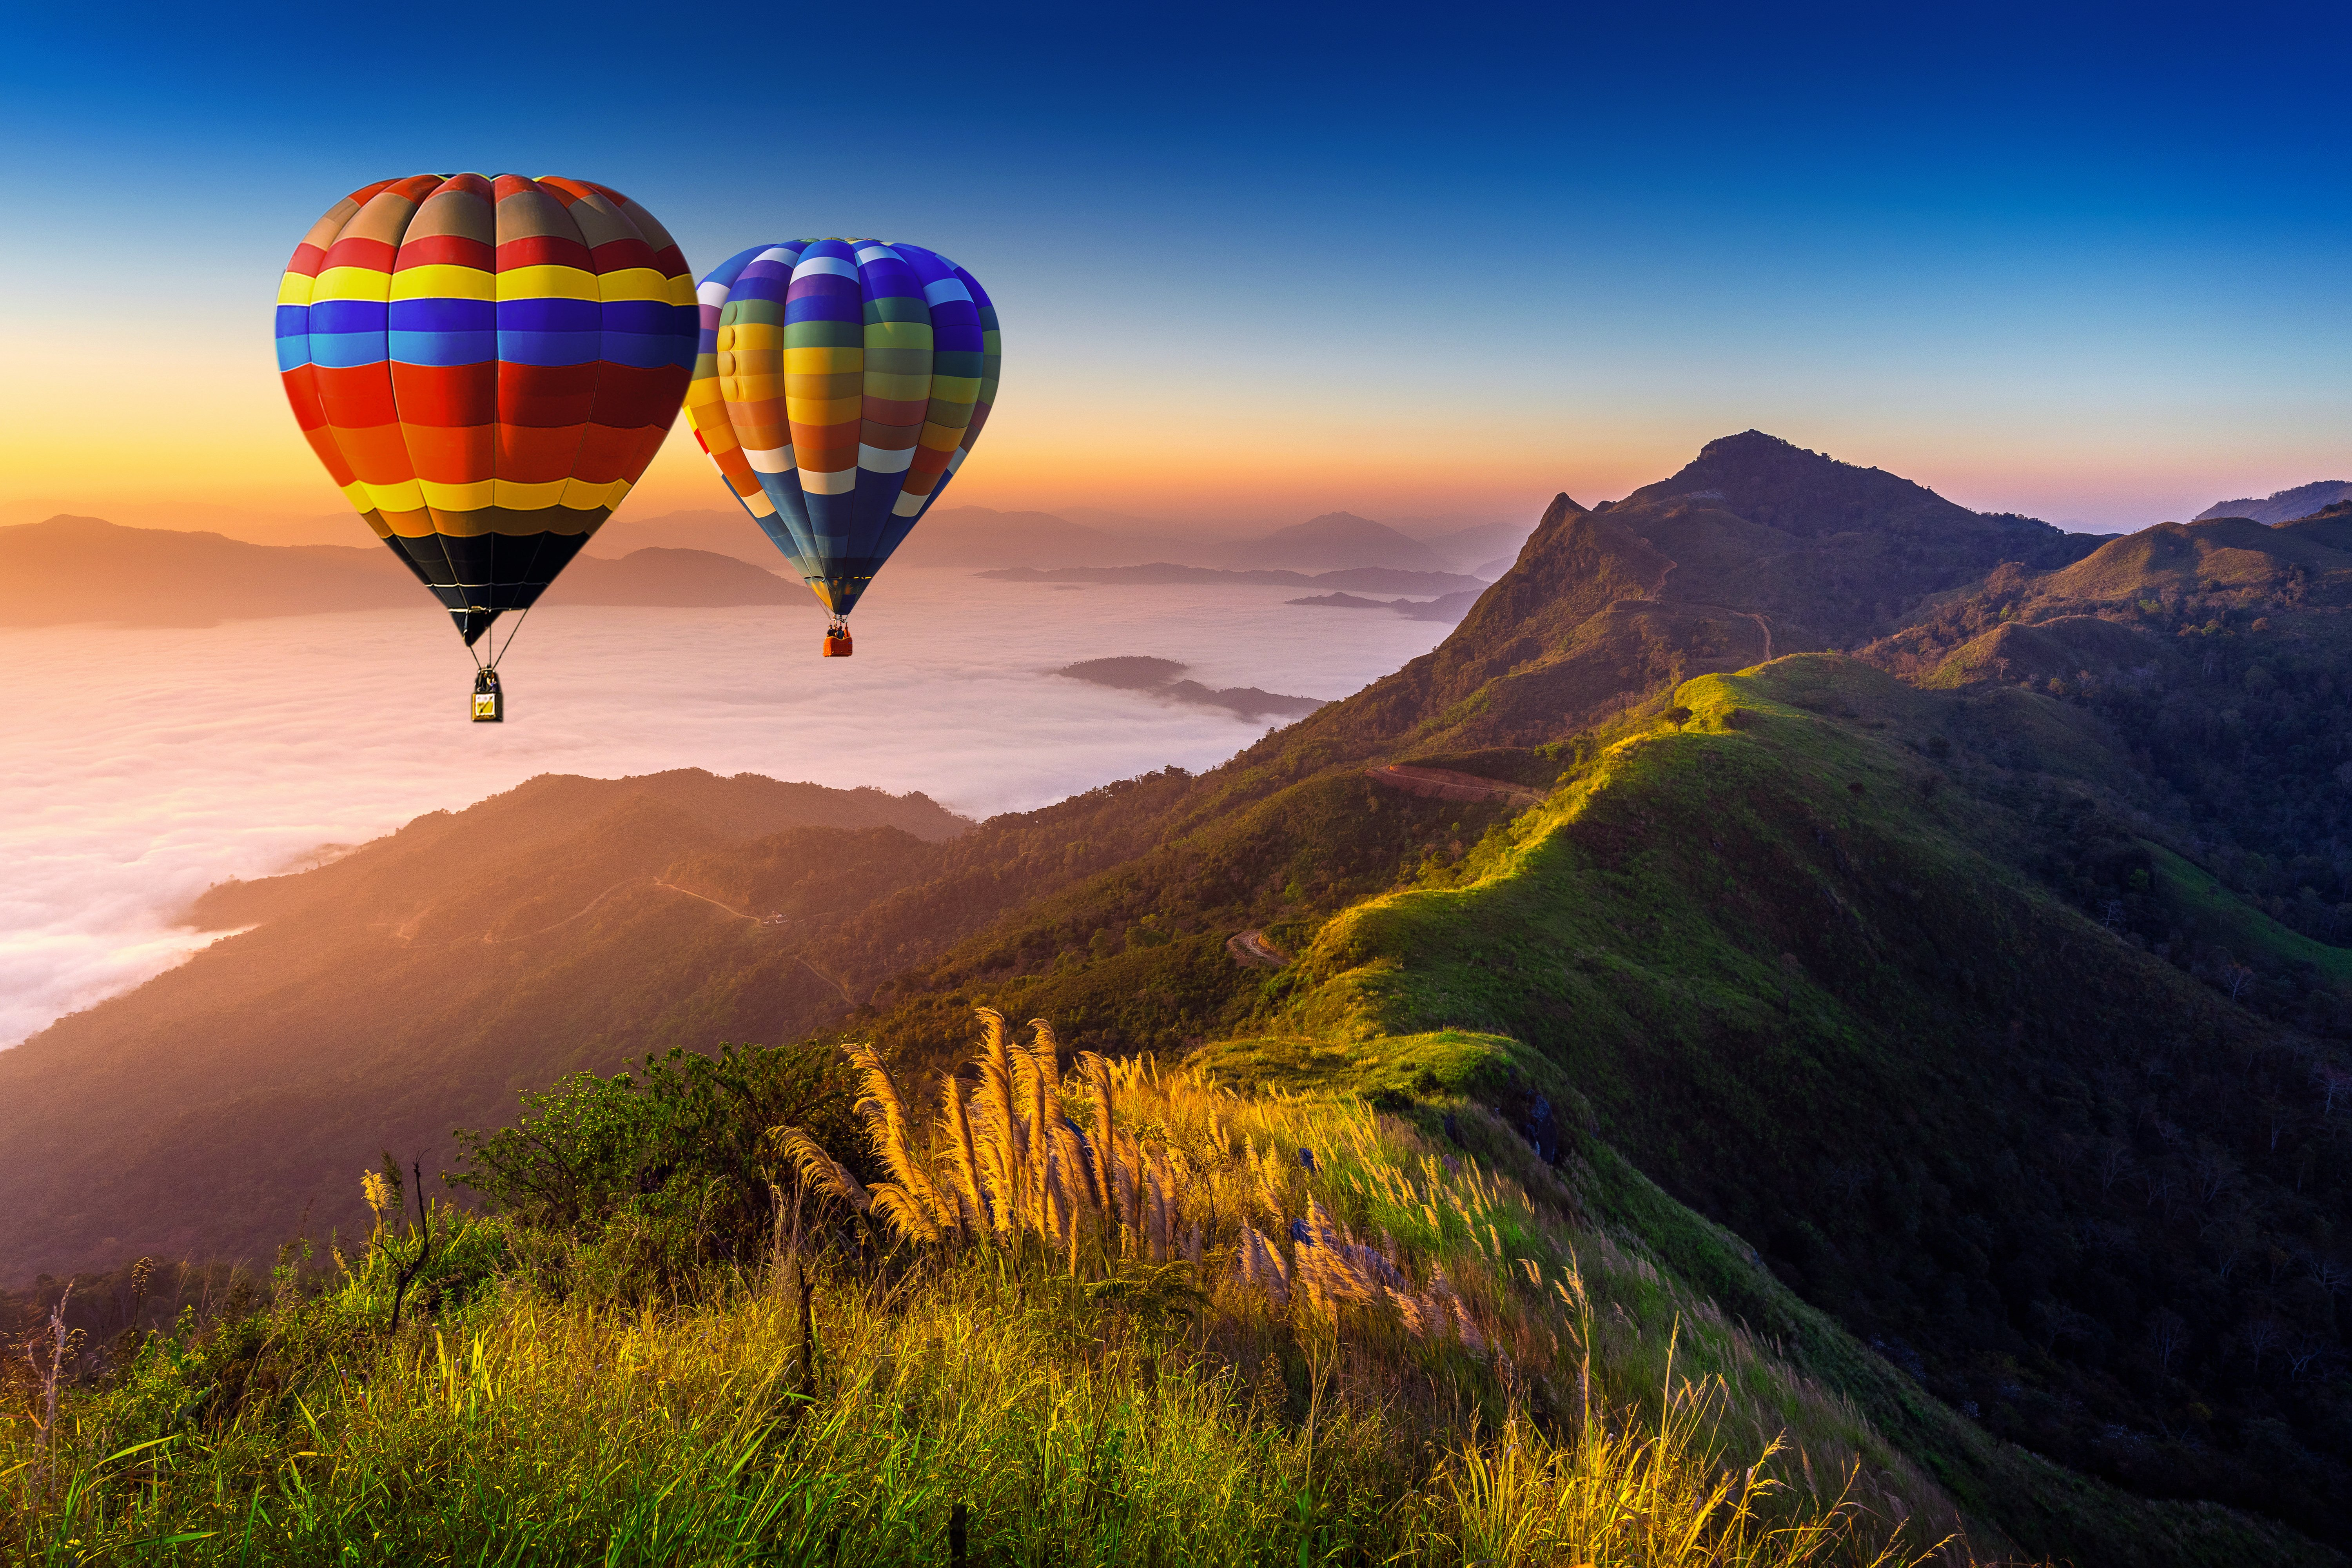 landscape-of-morning-fog-and-mountains-with-hot-air-balloons-at-sunrise